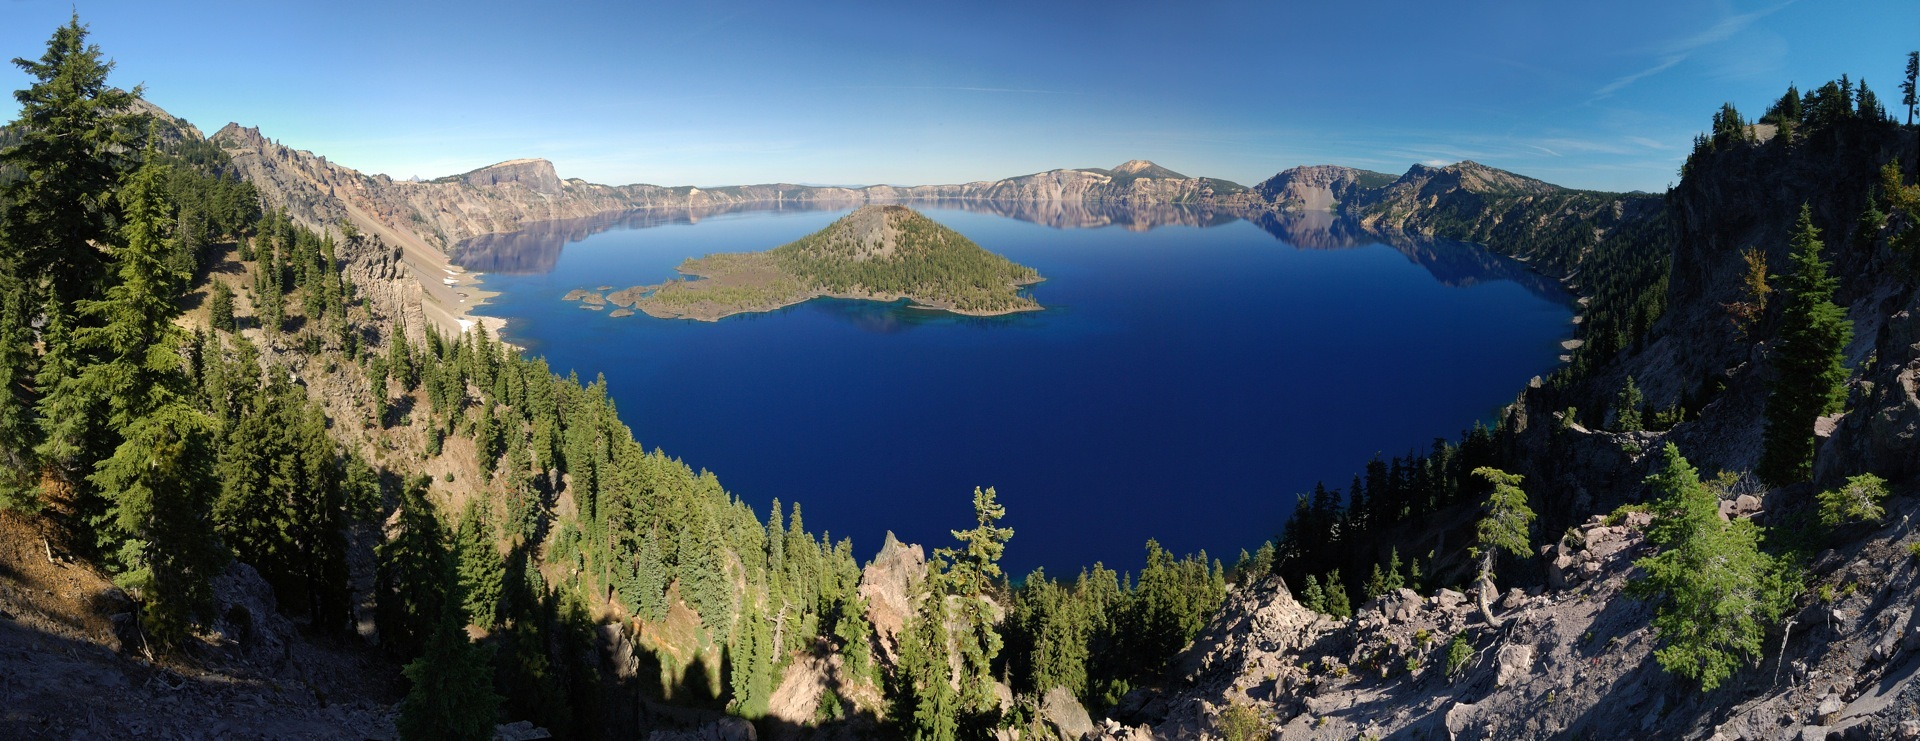 Crater Lake National Park clipart #5, Download drawings